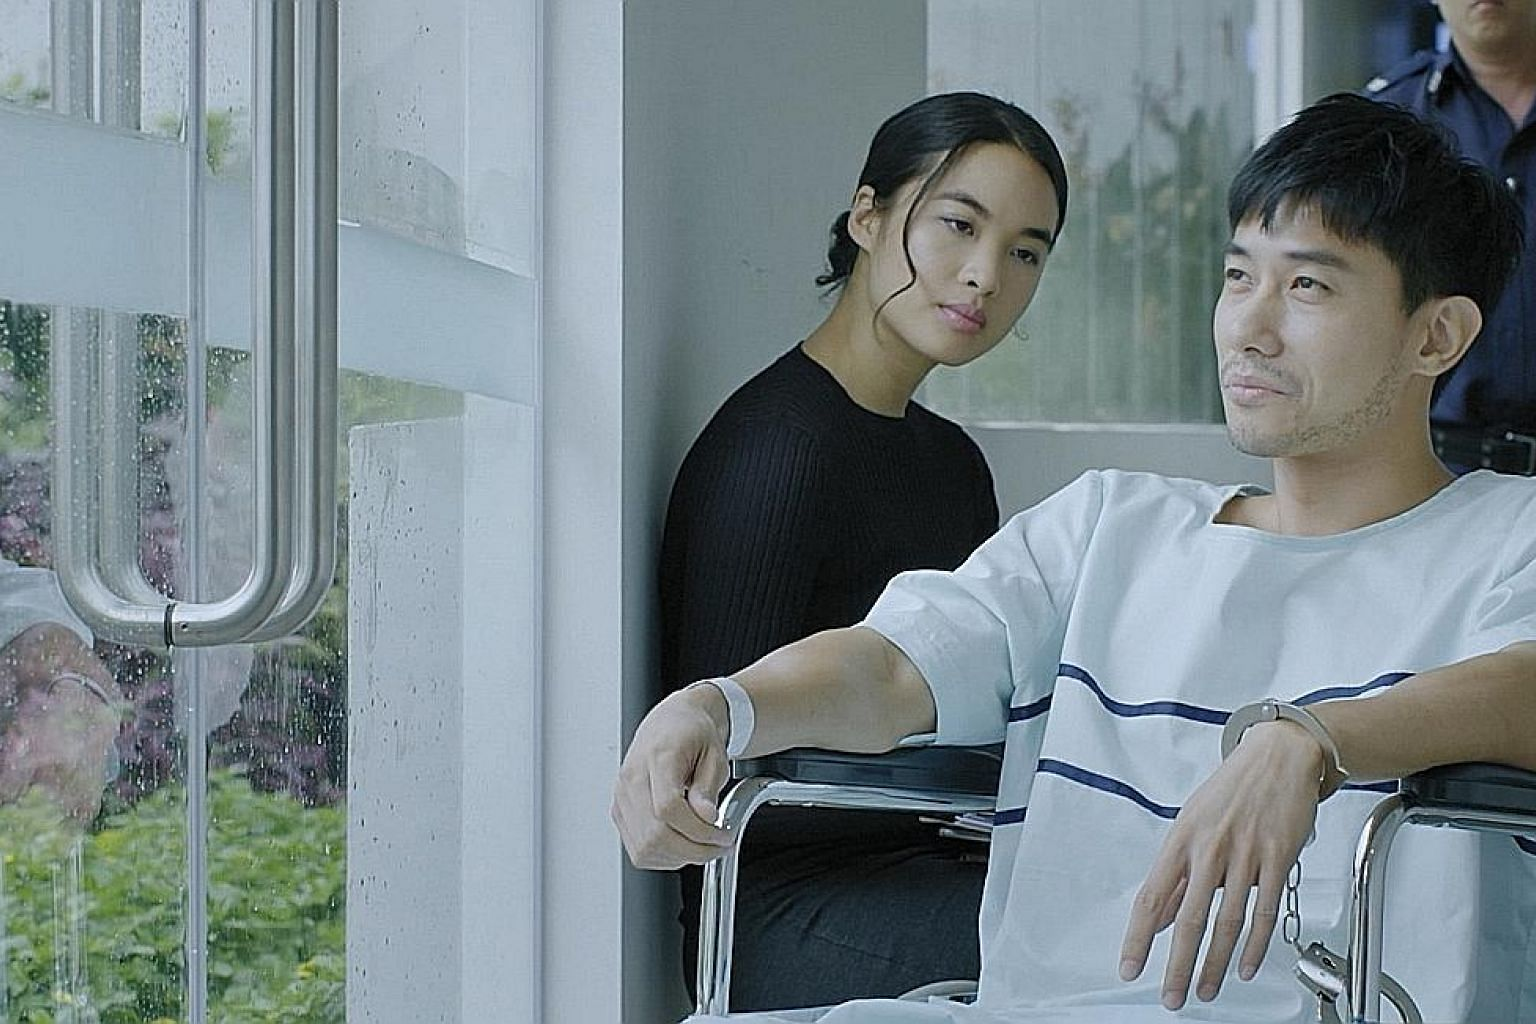 Netflix series Flavorful Origins features not only dishes, but also the people who prepare them. Actor Desmond Tan plays a serial killer, while Cheryl Chitty Tan (both left) plays his psychologist, in Toggle series Derek.